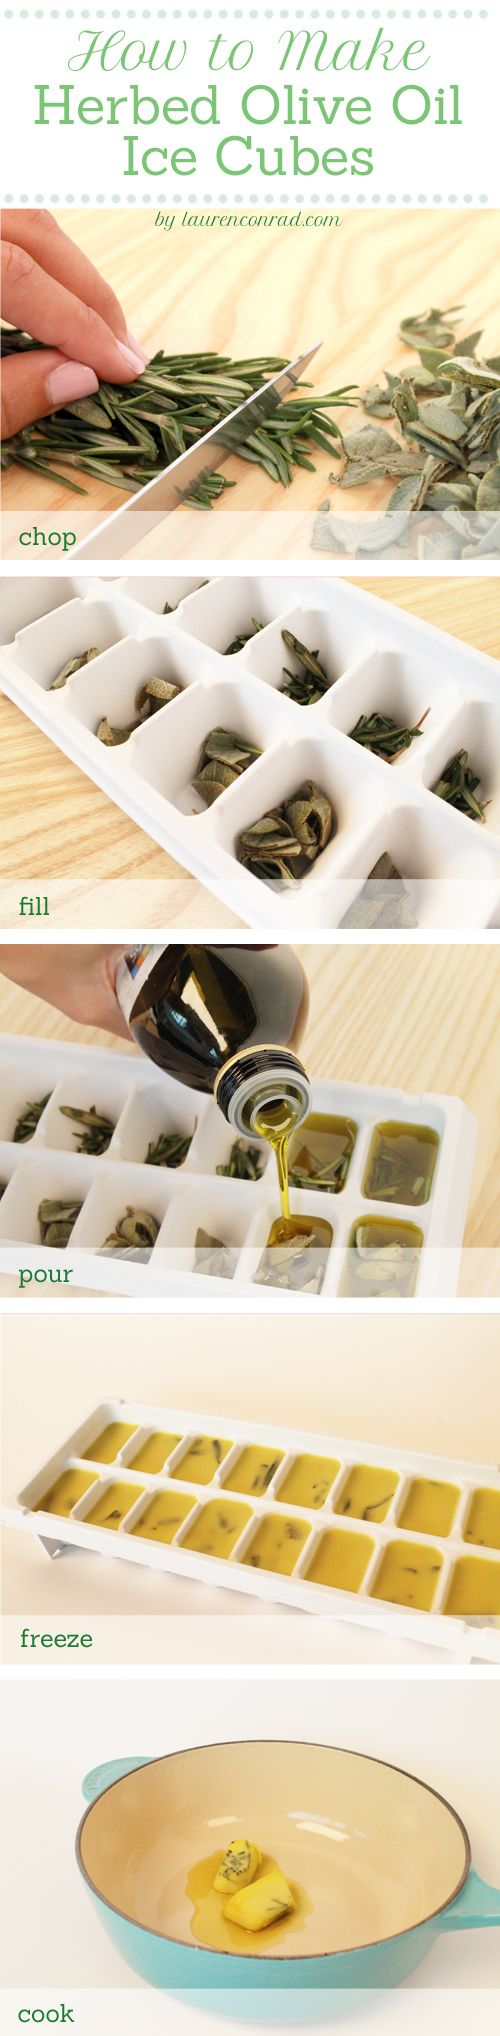 How to Make Herbed Olive Oil Ice Cubes